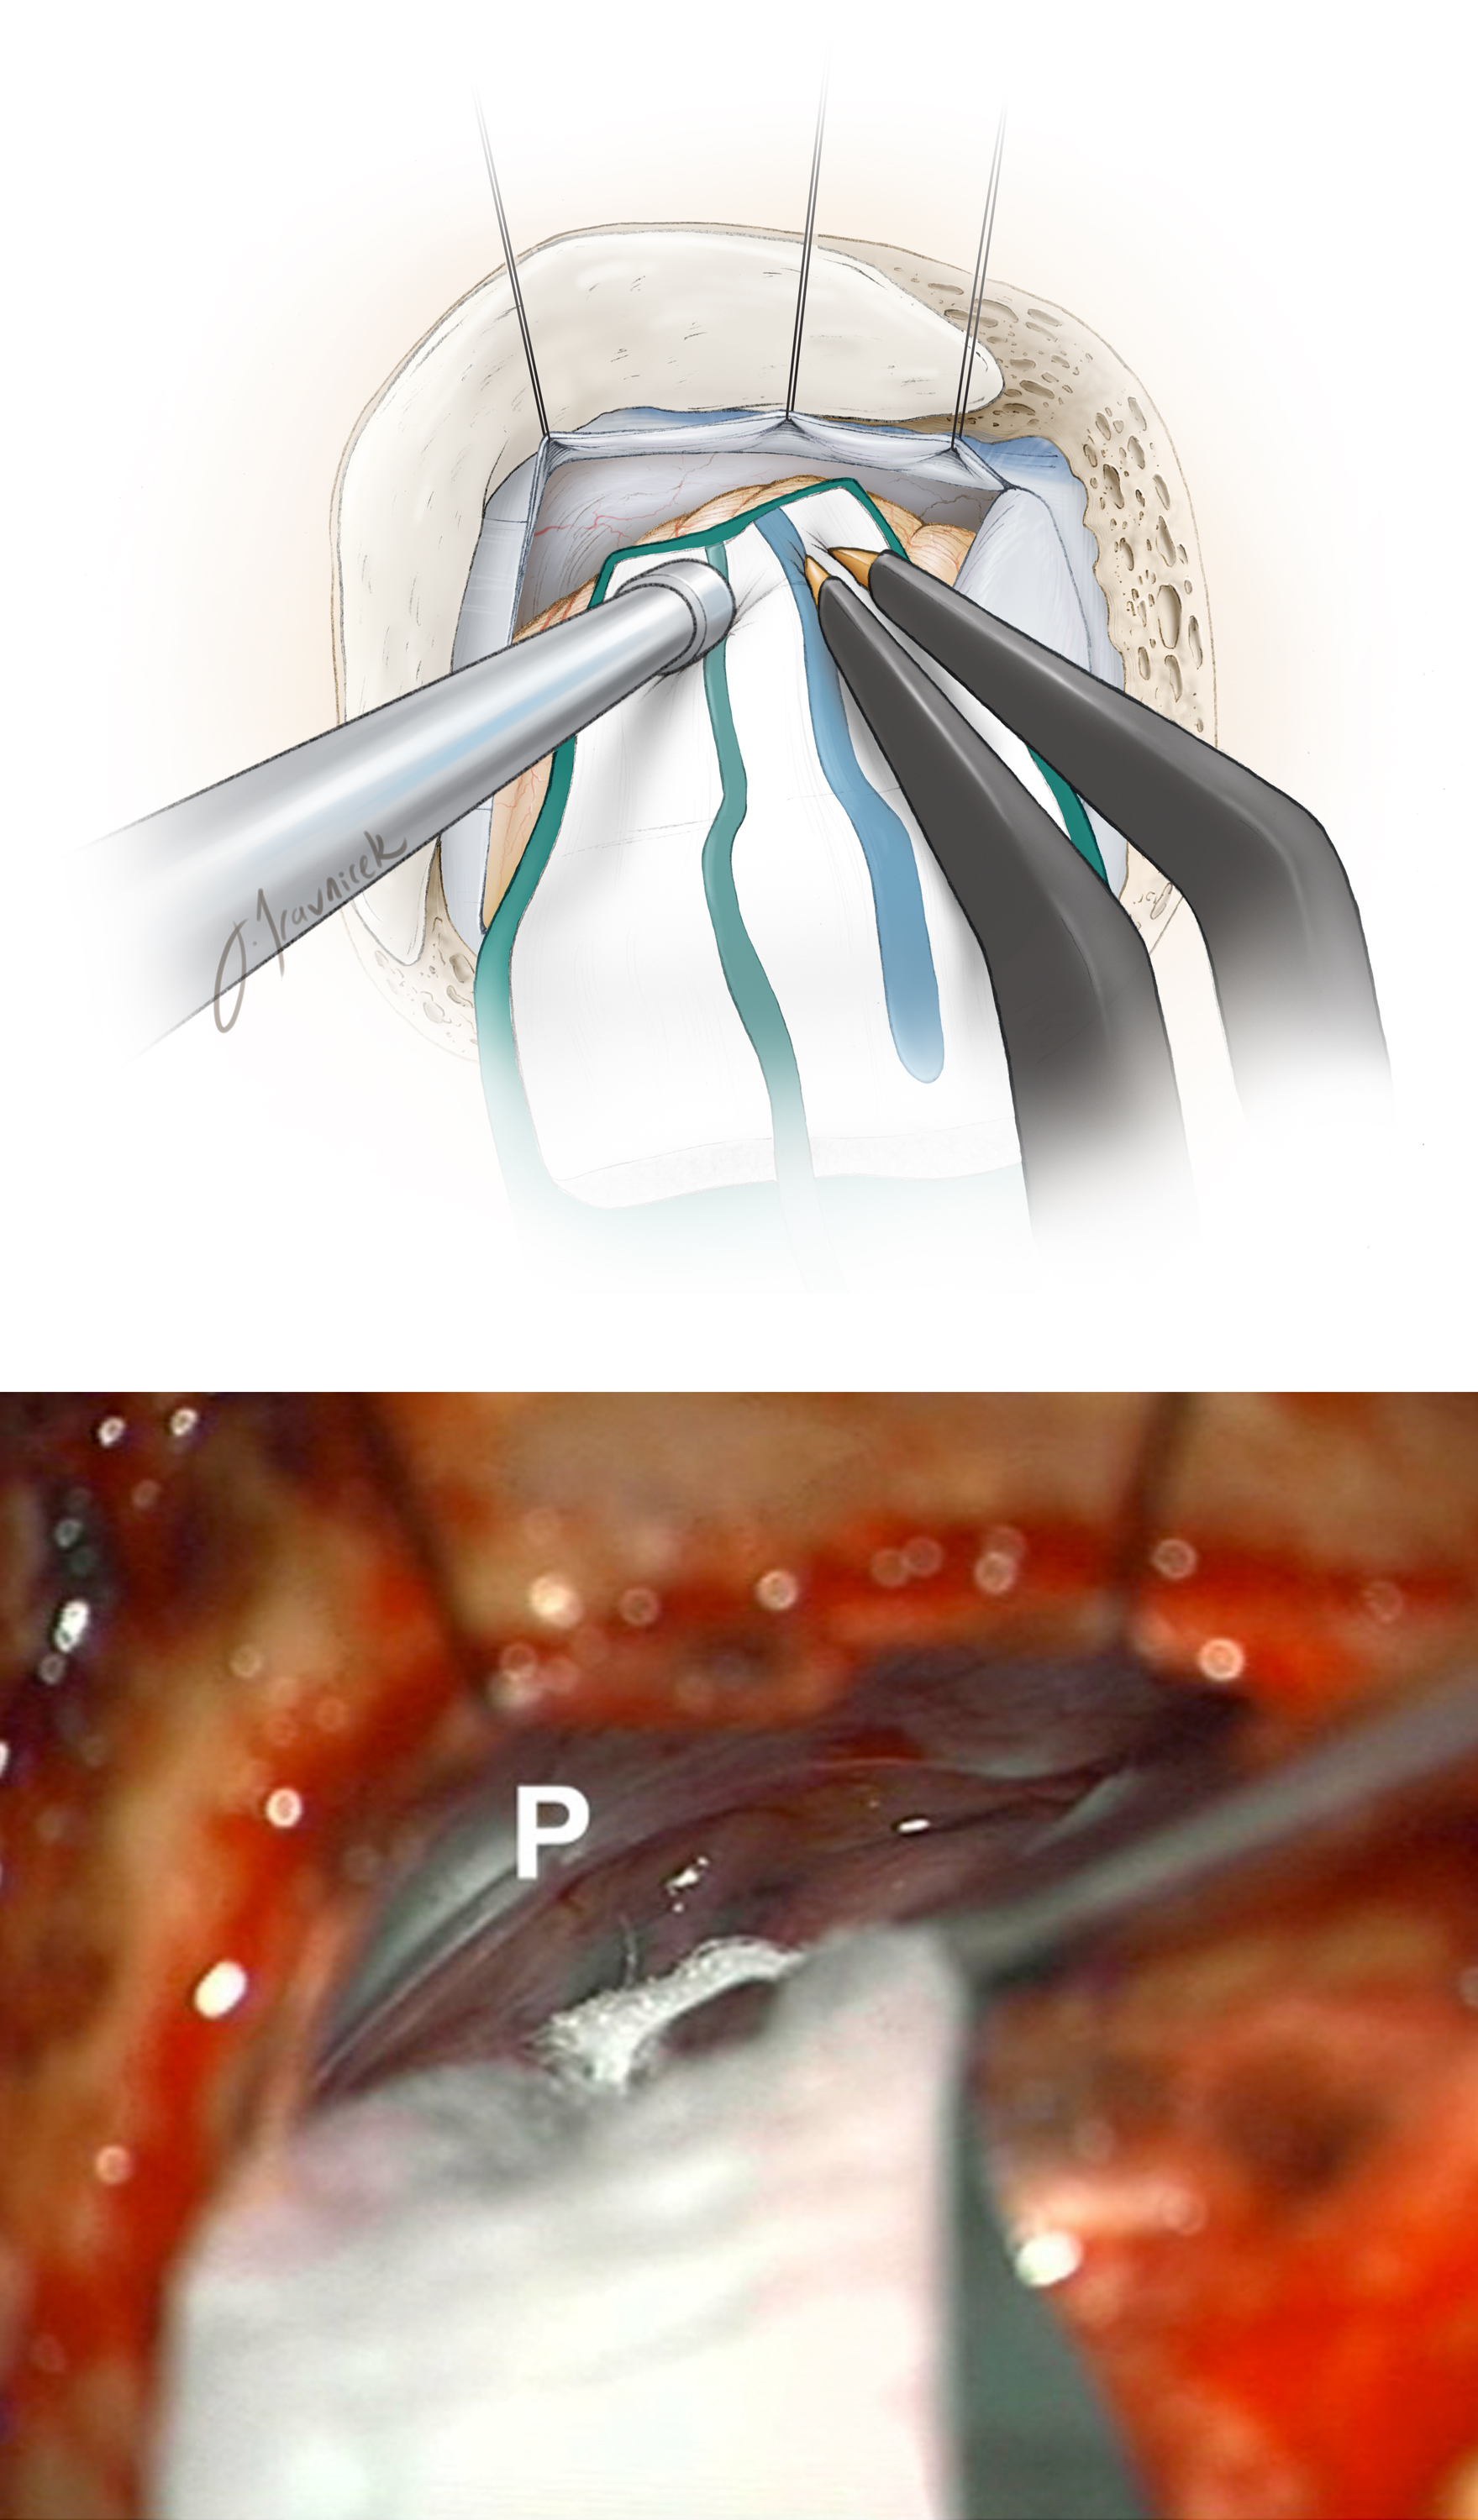 Figure 10: Supramedial cerebellar retraction: A piece of glove (cut slightly larger than the cottonoid patty) acts as a rubber dam. It protects the cerebellar hemisphere against the rough surface of the cottonoid as the rubber dam slides over the cerebellum while dissection is continued to expose the cerebellopontine angle (top image). I identify the junction of the petrous bone and the floor of posterior fossa (P, bottom intraoperative image) and advance the cottonoid over the rubber dam near the turn of the petrous bone toward the lower cranial nerves.